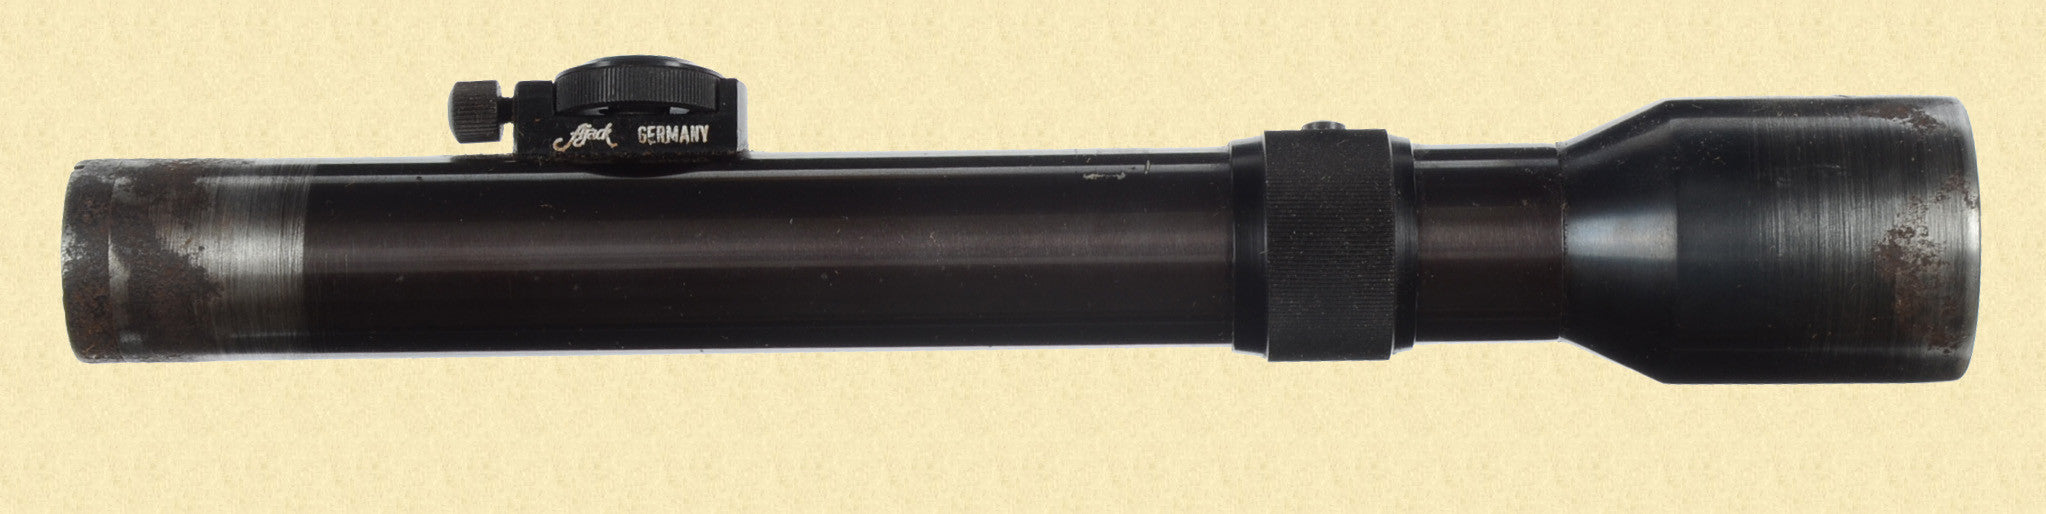 AJACK 2.5X70 RIFLE SCOPE